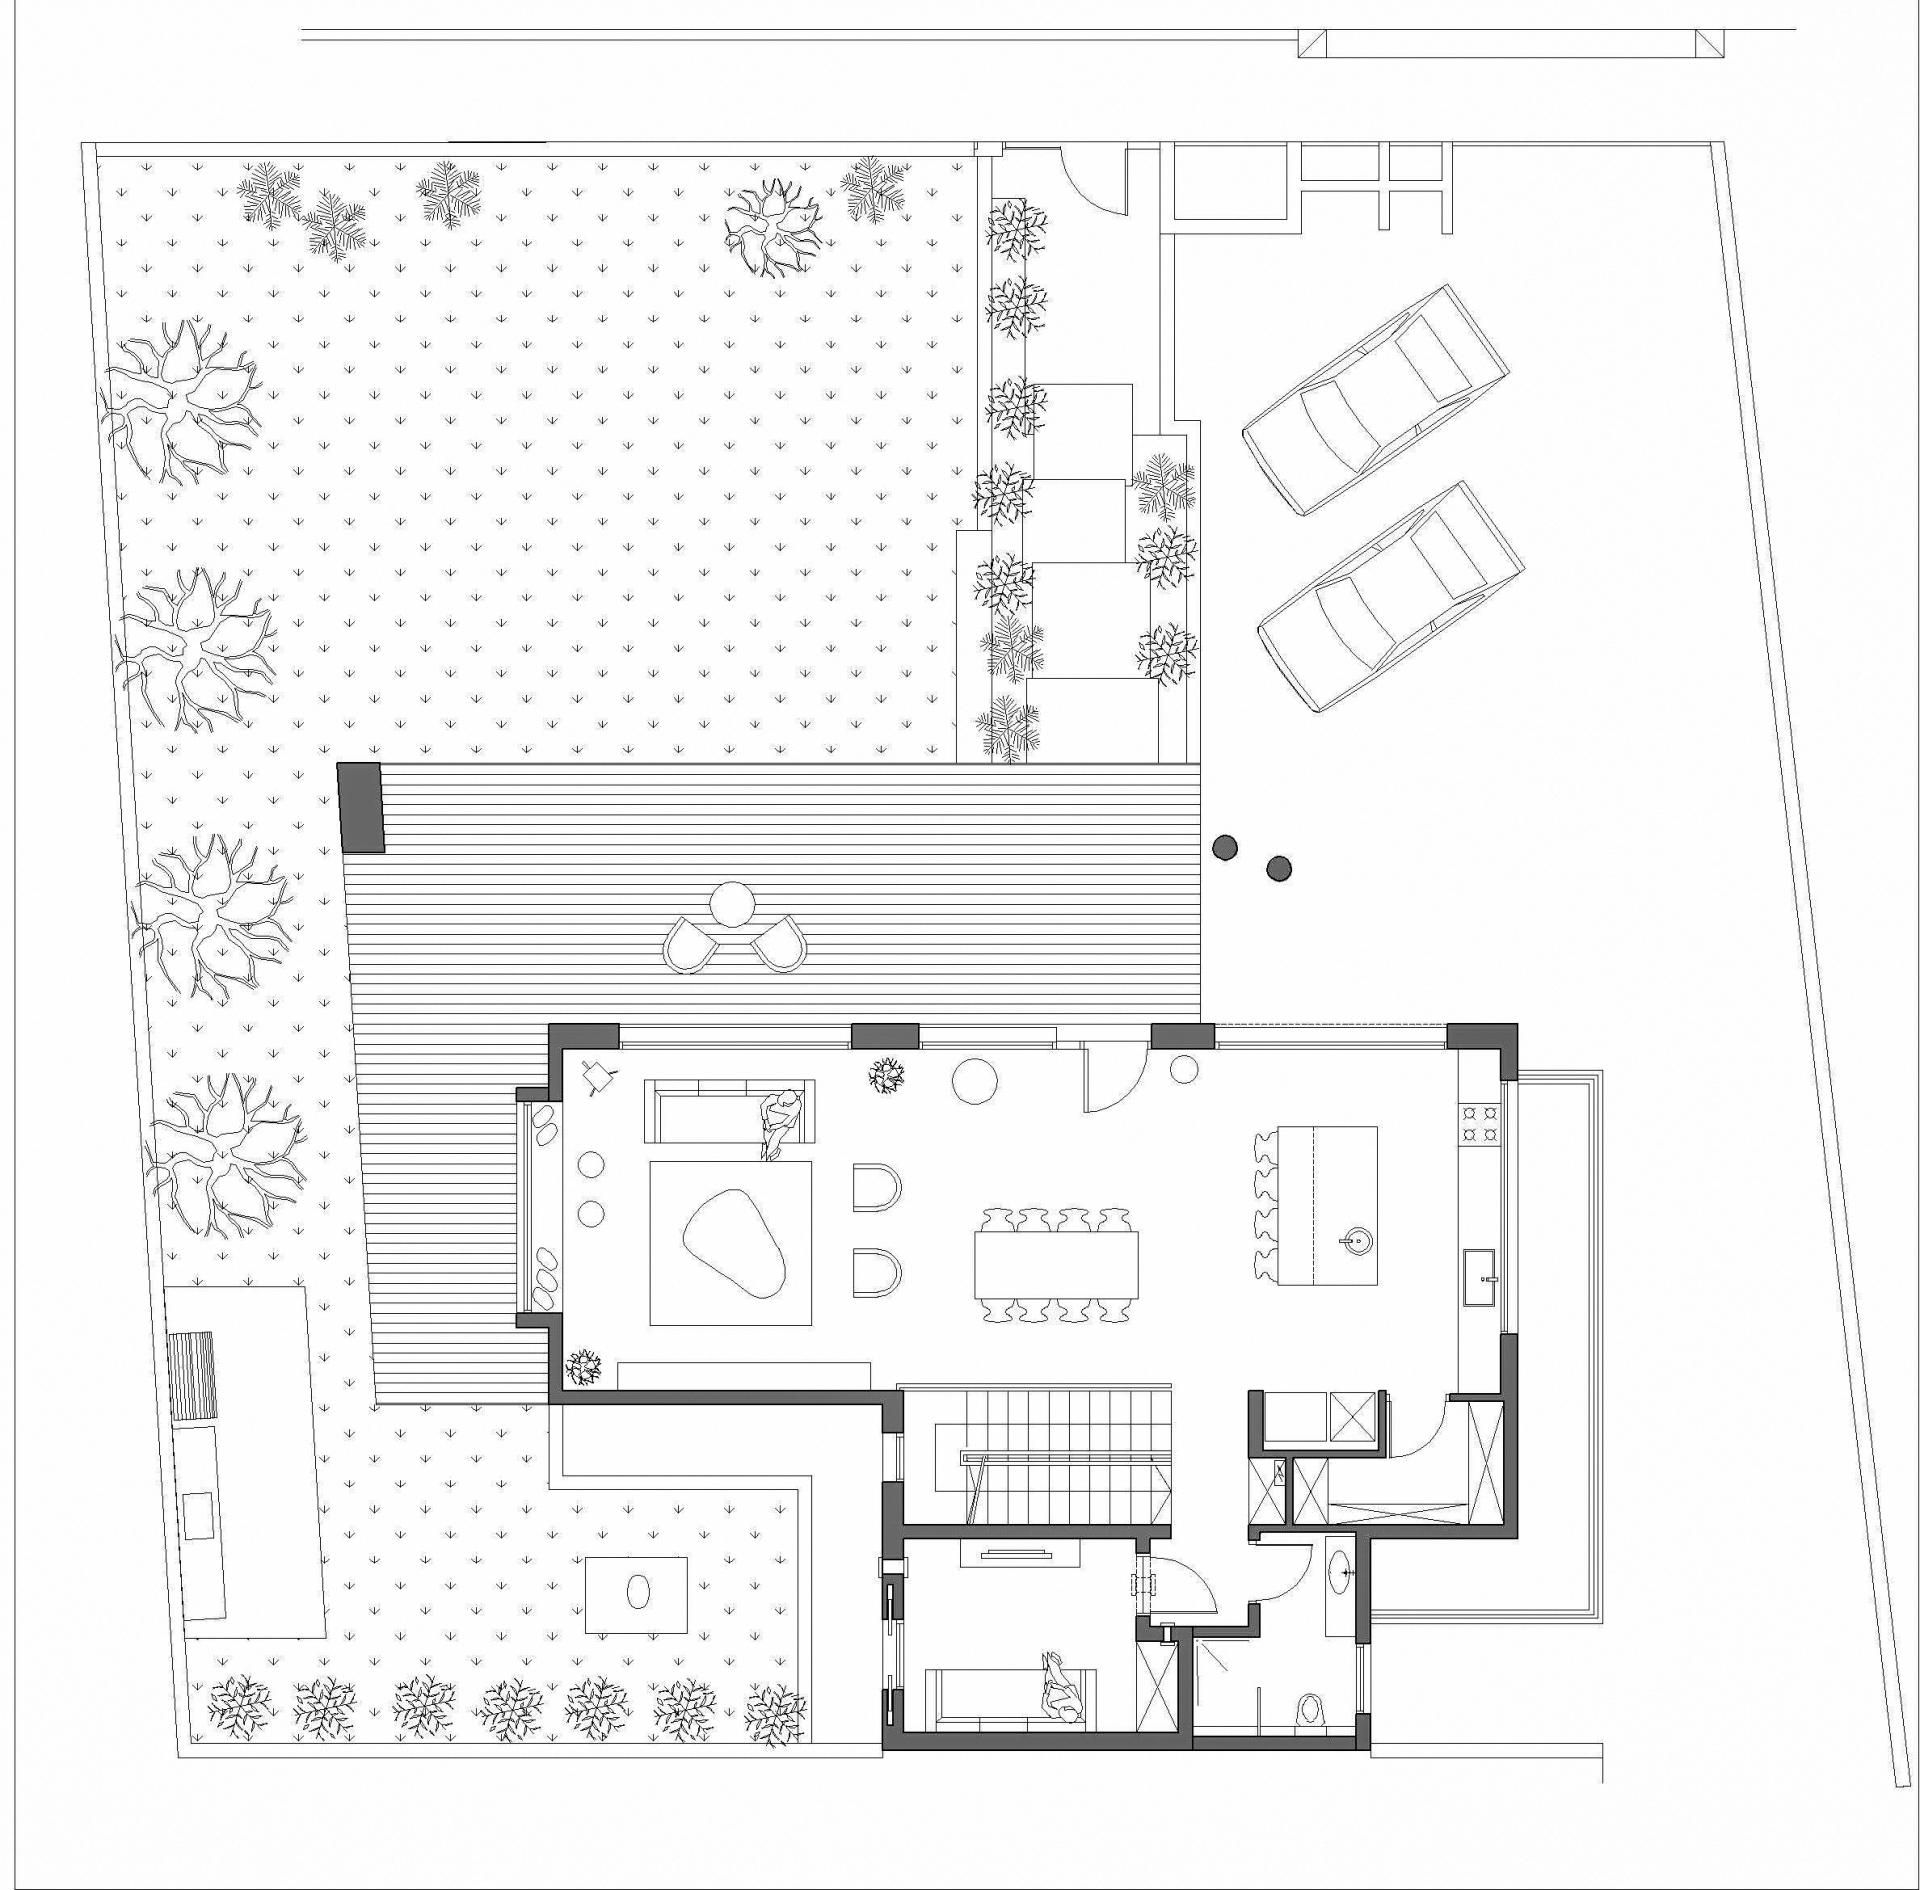 concrete ron shenkin ground floor plan